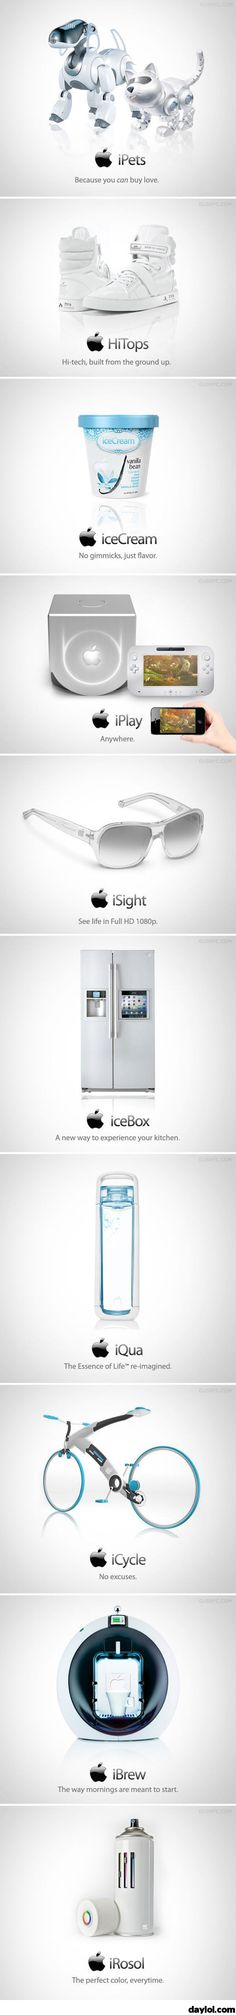 Possible future Apple products. Lol! I personally hate Apple products I have owned them, know the software and I would choose Android over Apple any day. But this is still funny and I could see this coming true in the future.